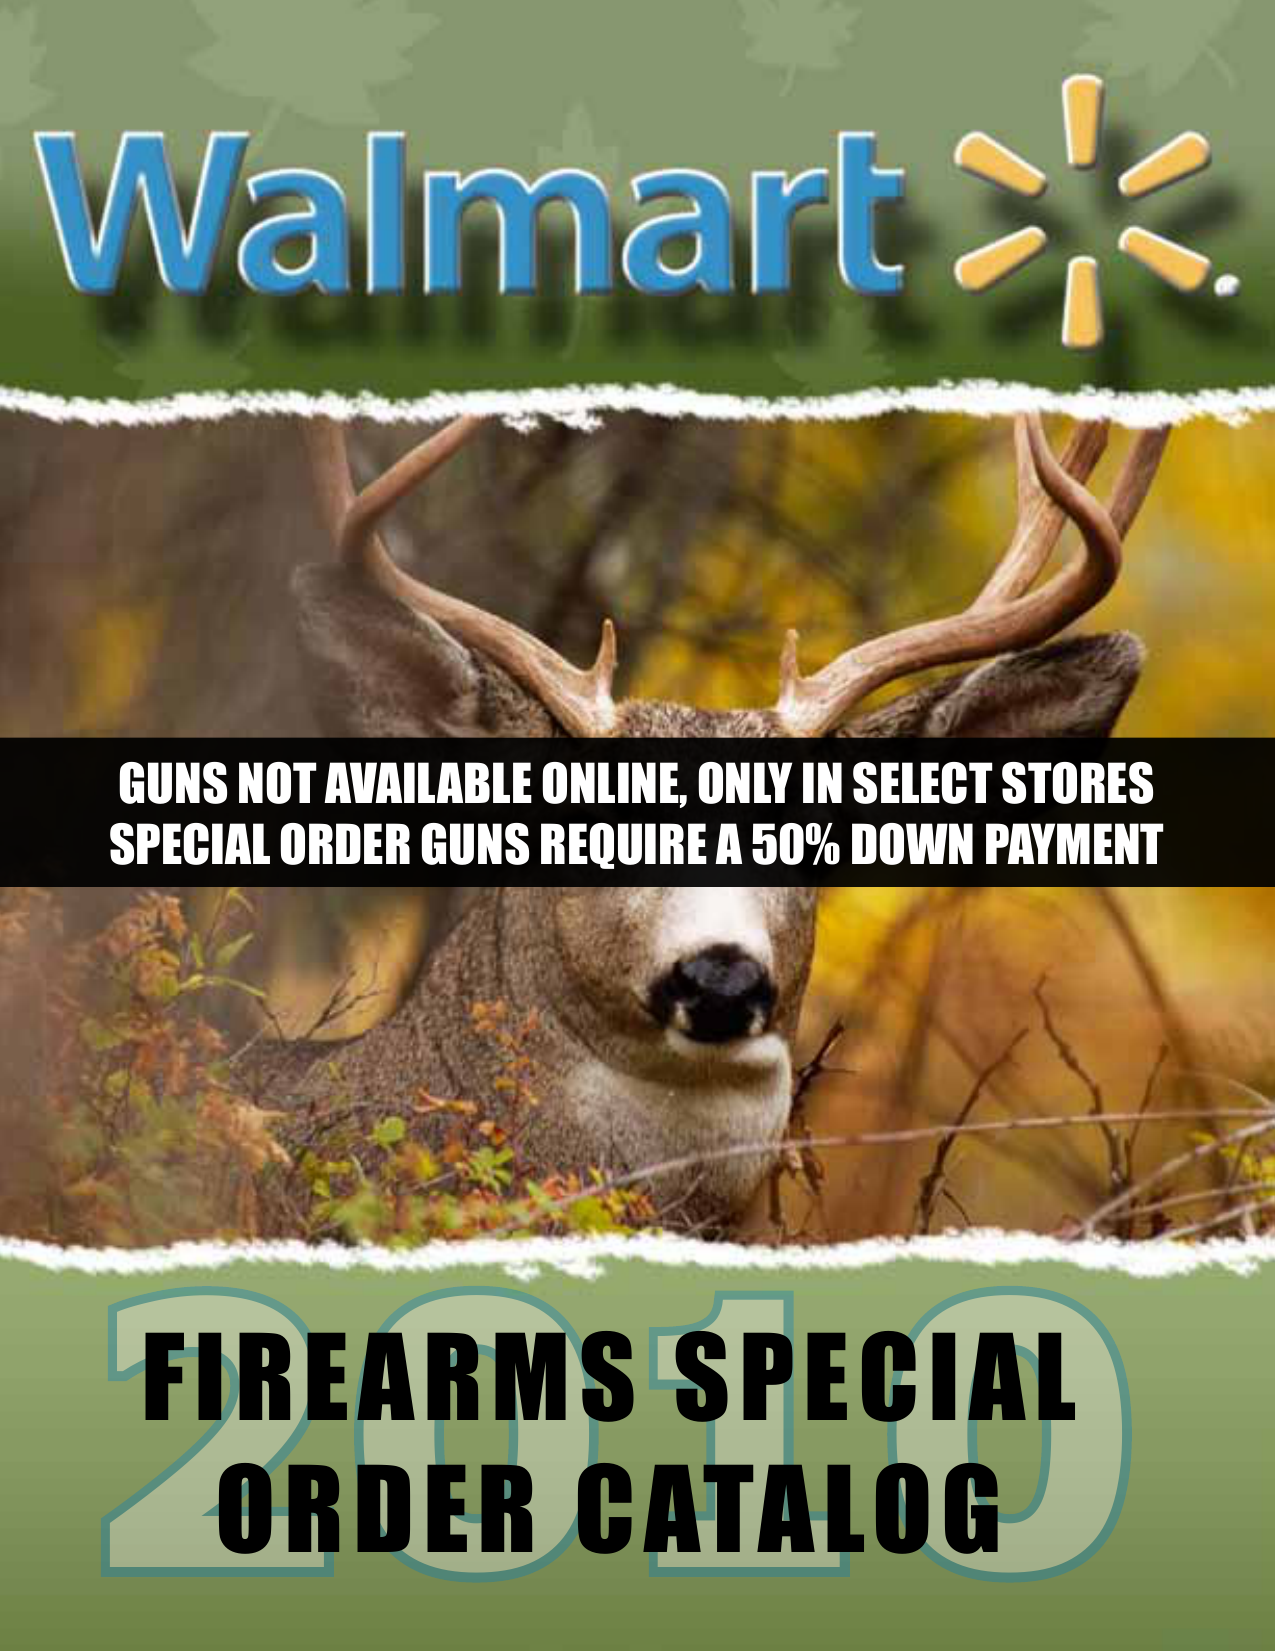 Dec 03, · Ordering From the Walmart Special Order Gun Catalog If this is your first visit, be sure to check out the FAQ by clicking the link above. You may have to register before you can post: click the register link above to proceed.